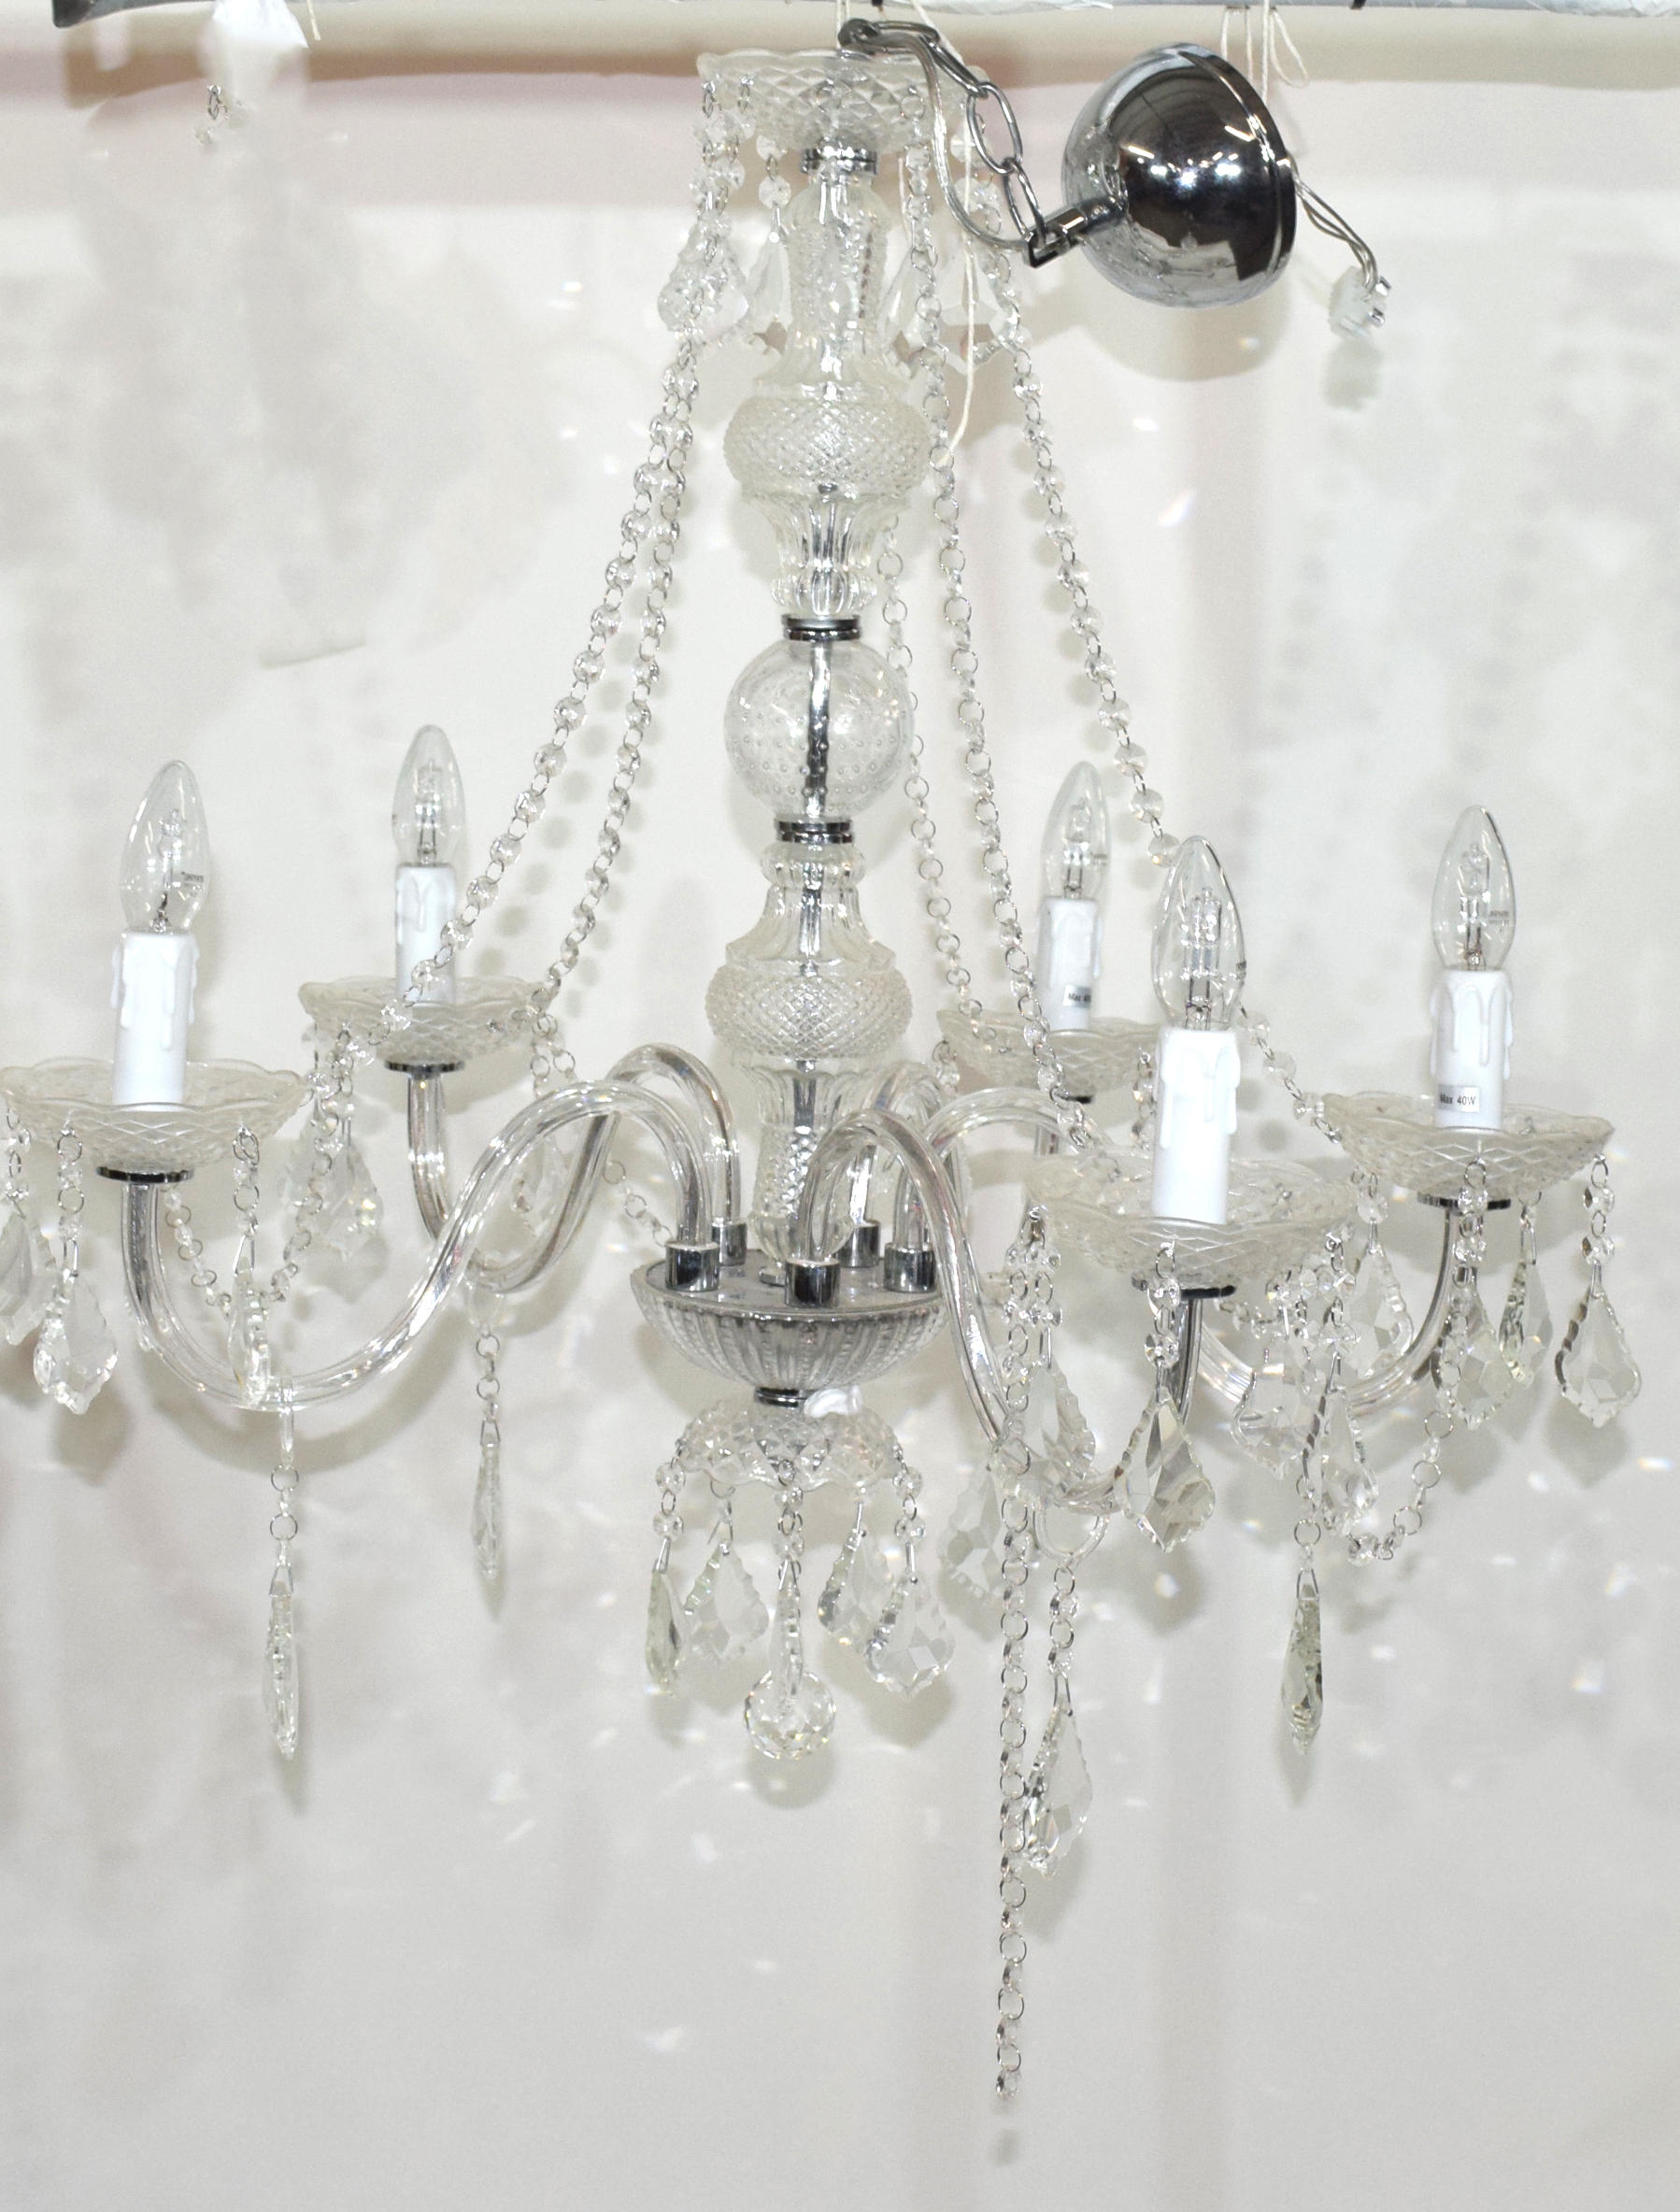 Contemporary five-light chandelier set with clear prismatic glass drops, approx 75cm high Condition: